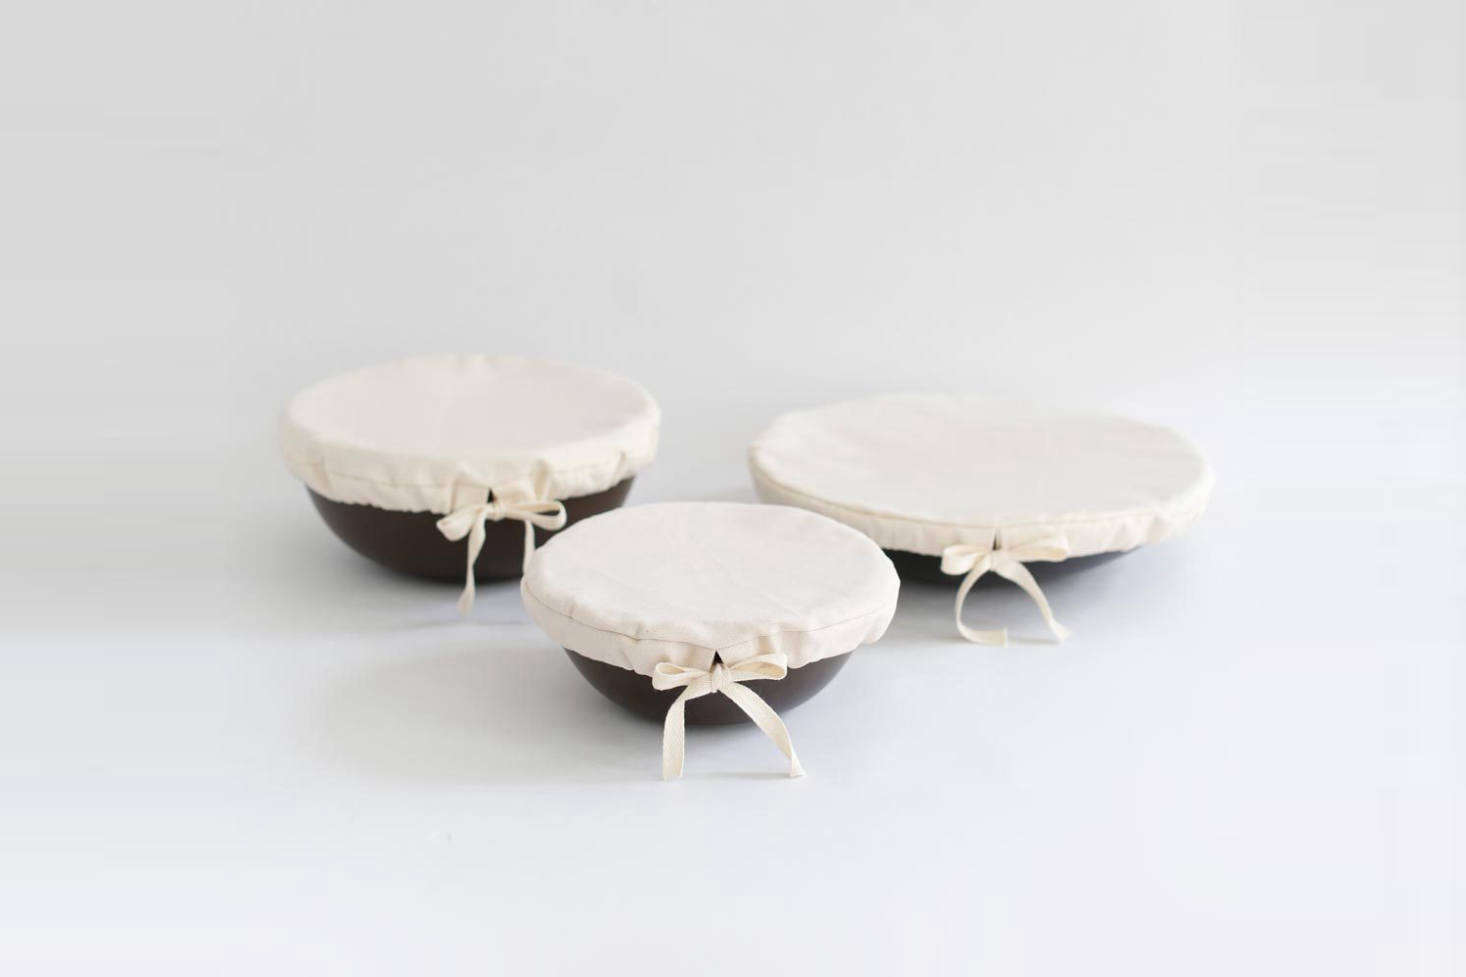 For the eco-conscious person or cook: these organic cottonCouvre-Plat Roundbowl covers come in three sizes from Àplat and fit our ethos of zero-plastic and no single-use disposables.